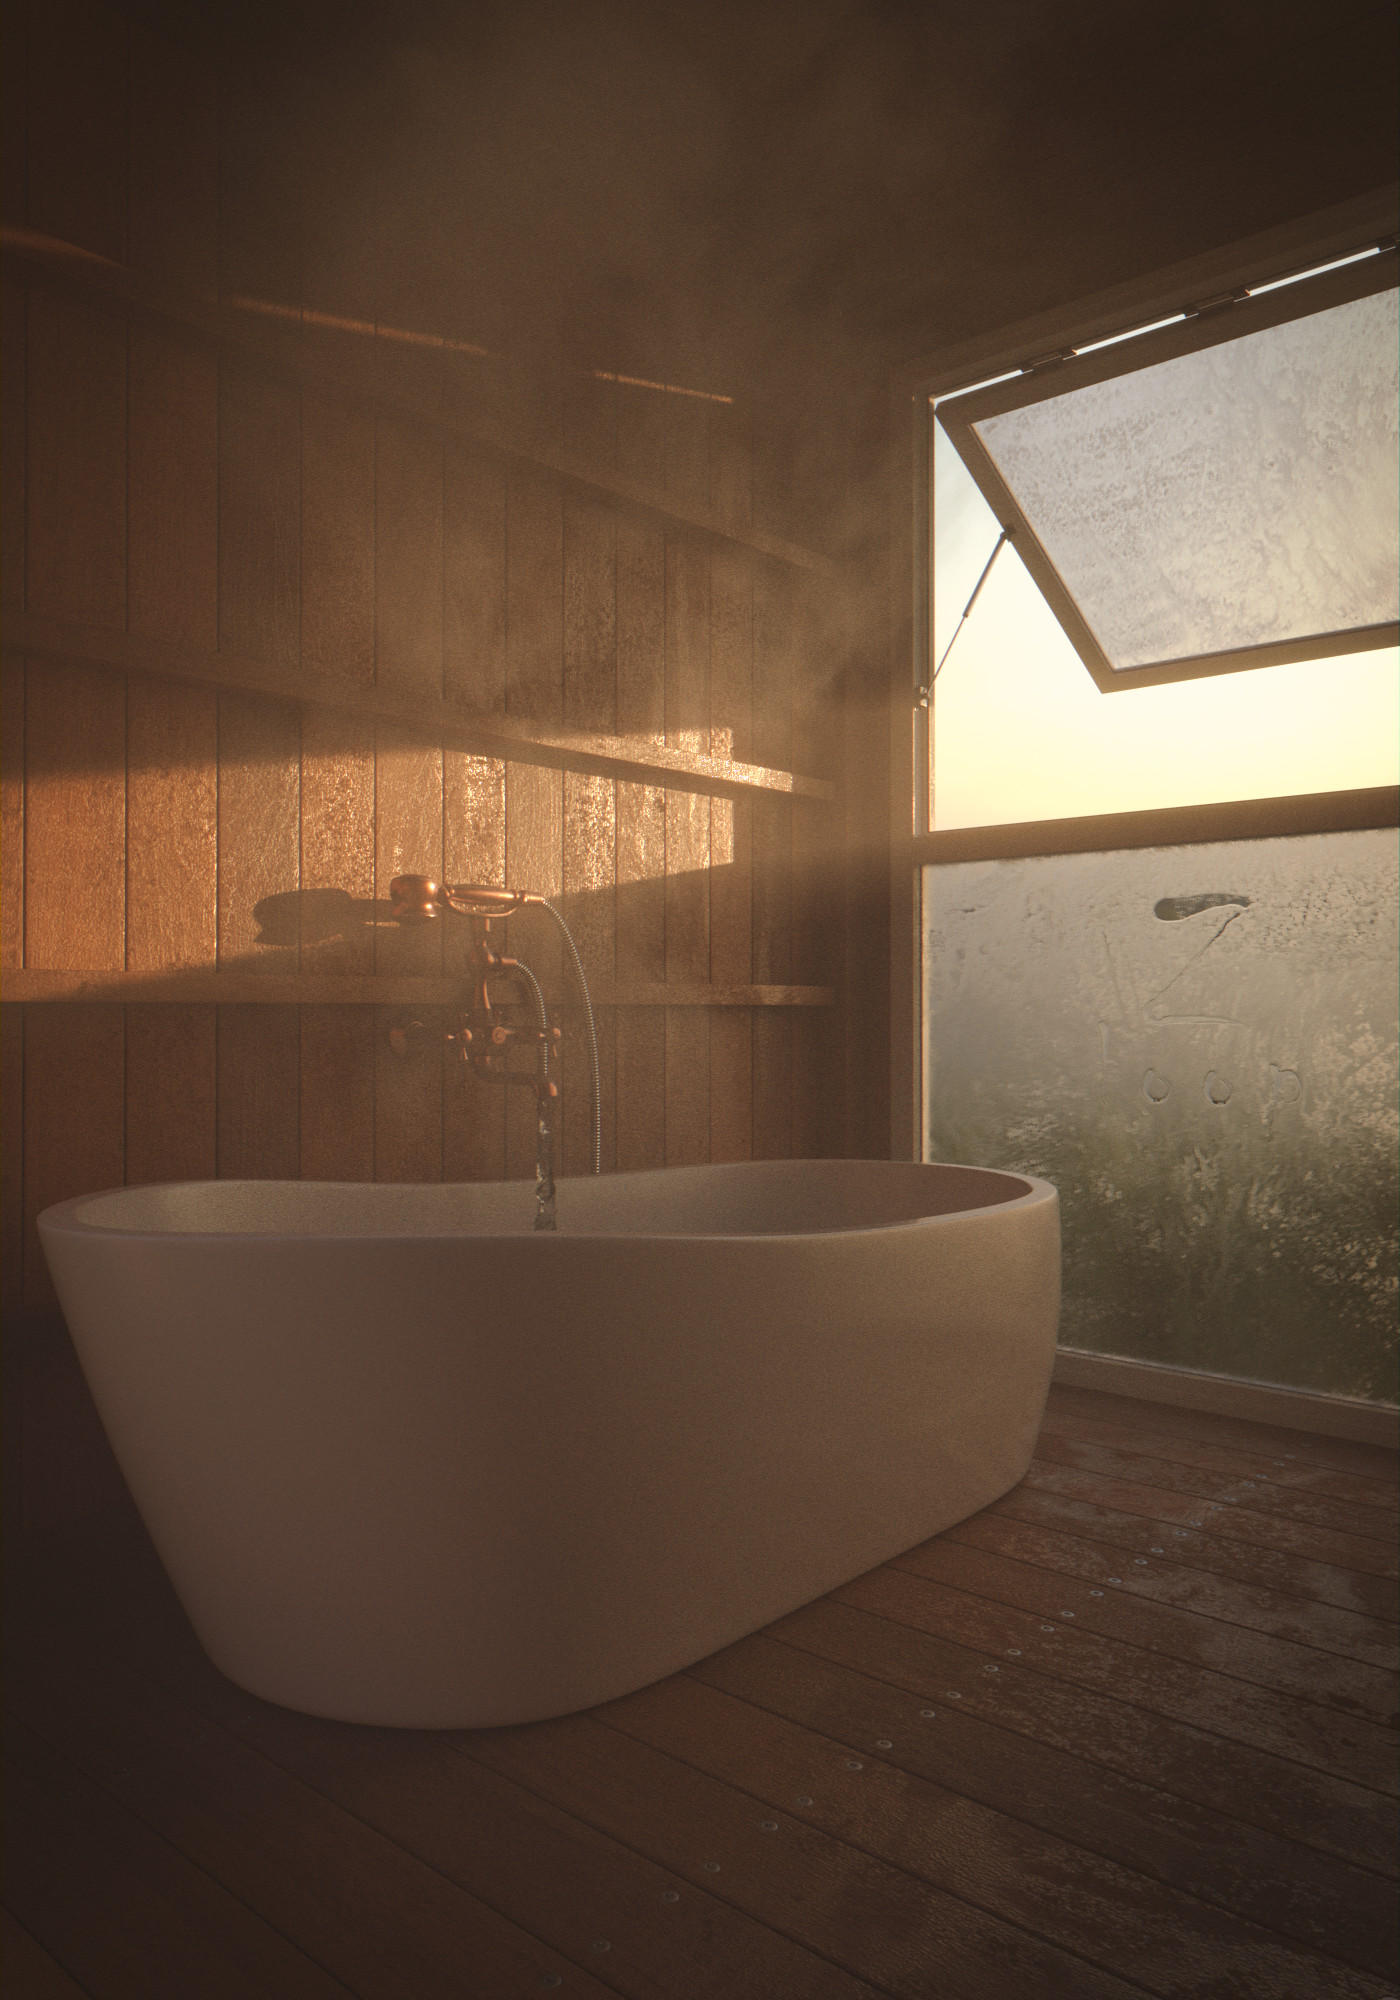 Minimalistic yet highly detailed bathroom,by  Gaiduk Dmytro using  Overlay  and  Wood  materials. Made with Blender.